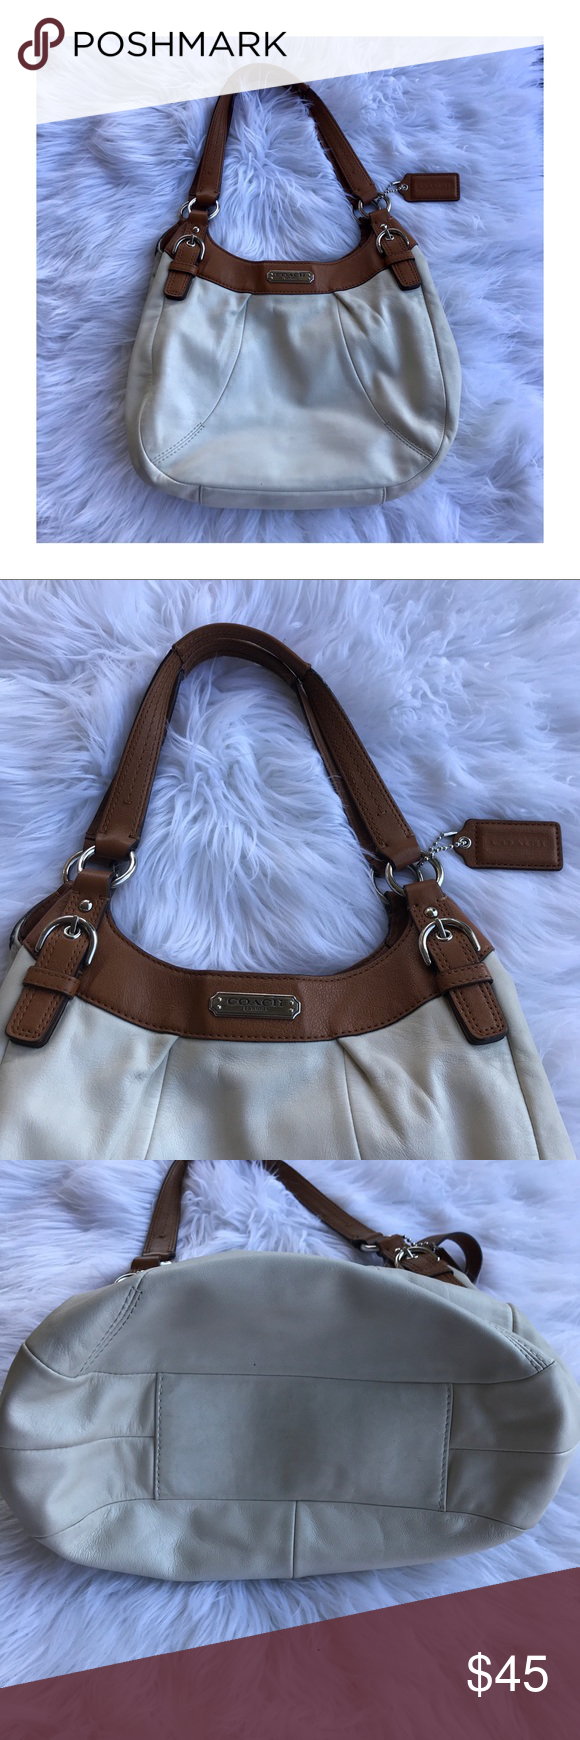 1afc116175 Cream Coach Purse Cream colored Coach purse with tan straps. Super cute and  perfect for any occasion. Used but has a lot of live left in it!